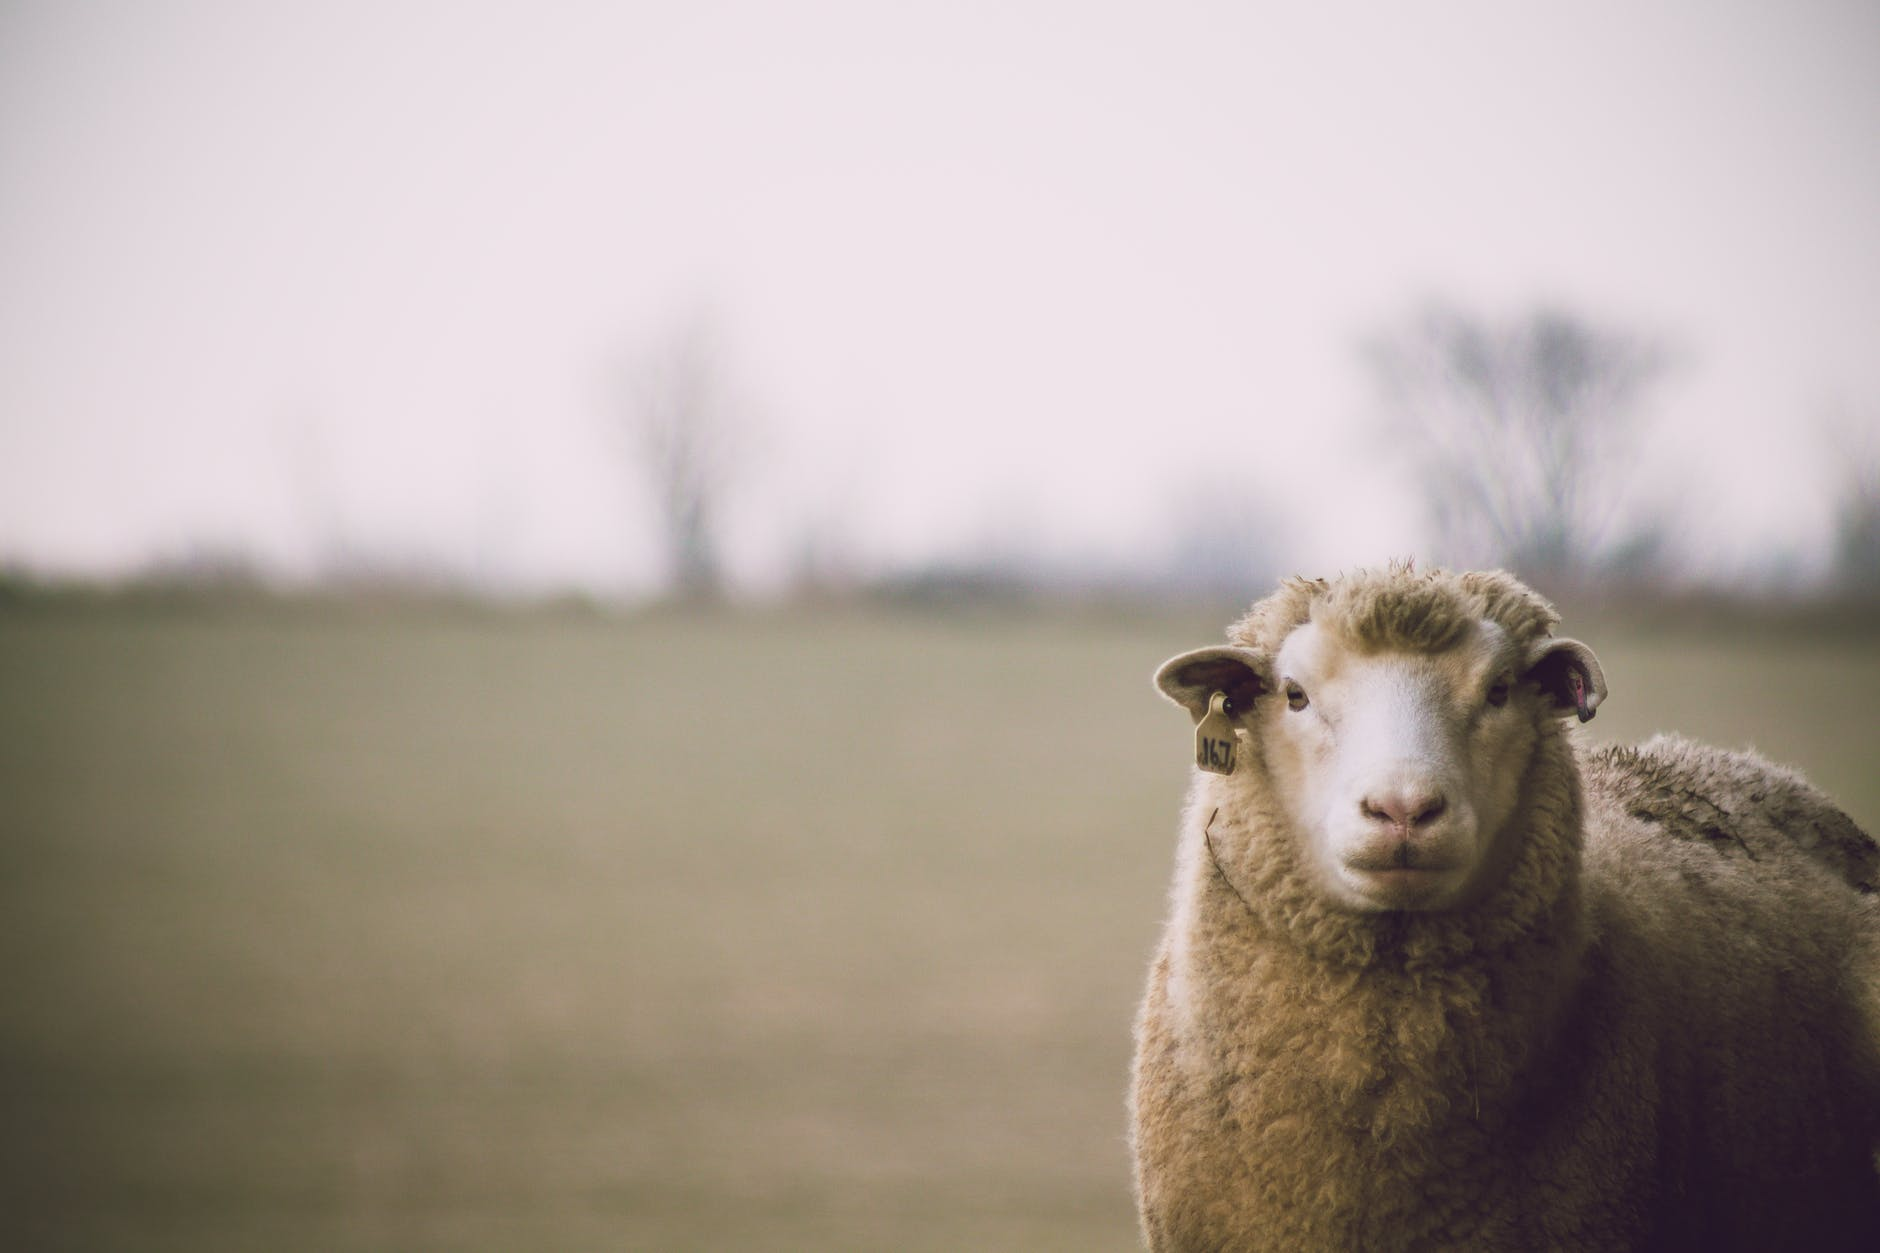 shallow focus photography of sheep, sustainable fabric